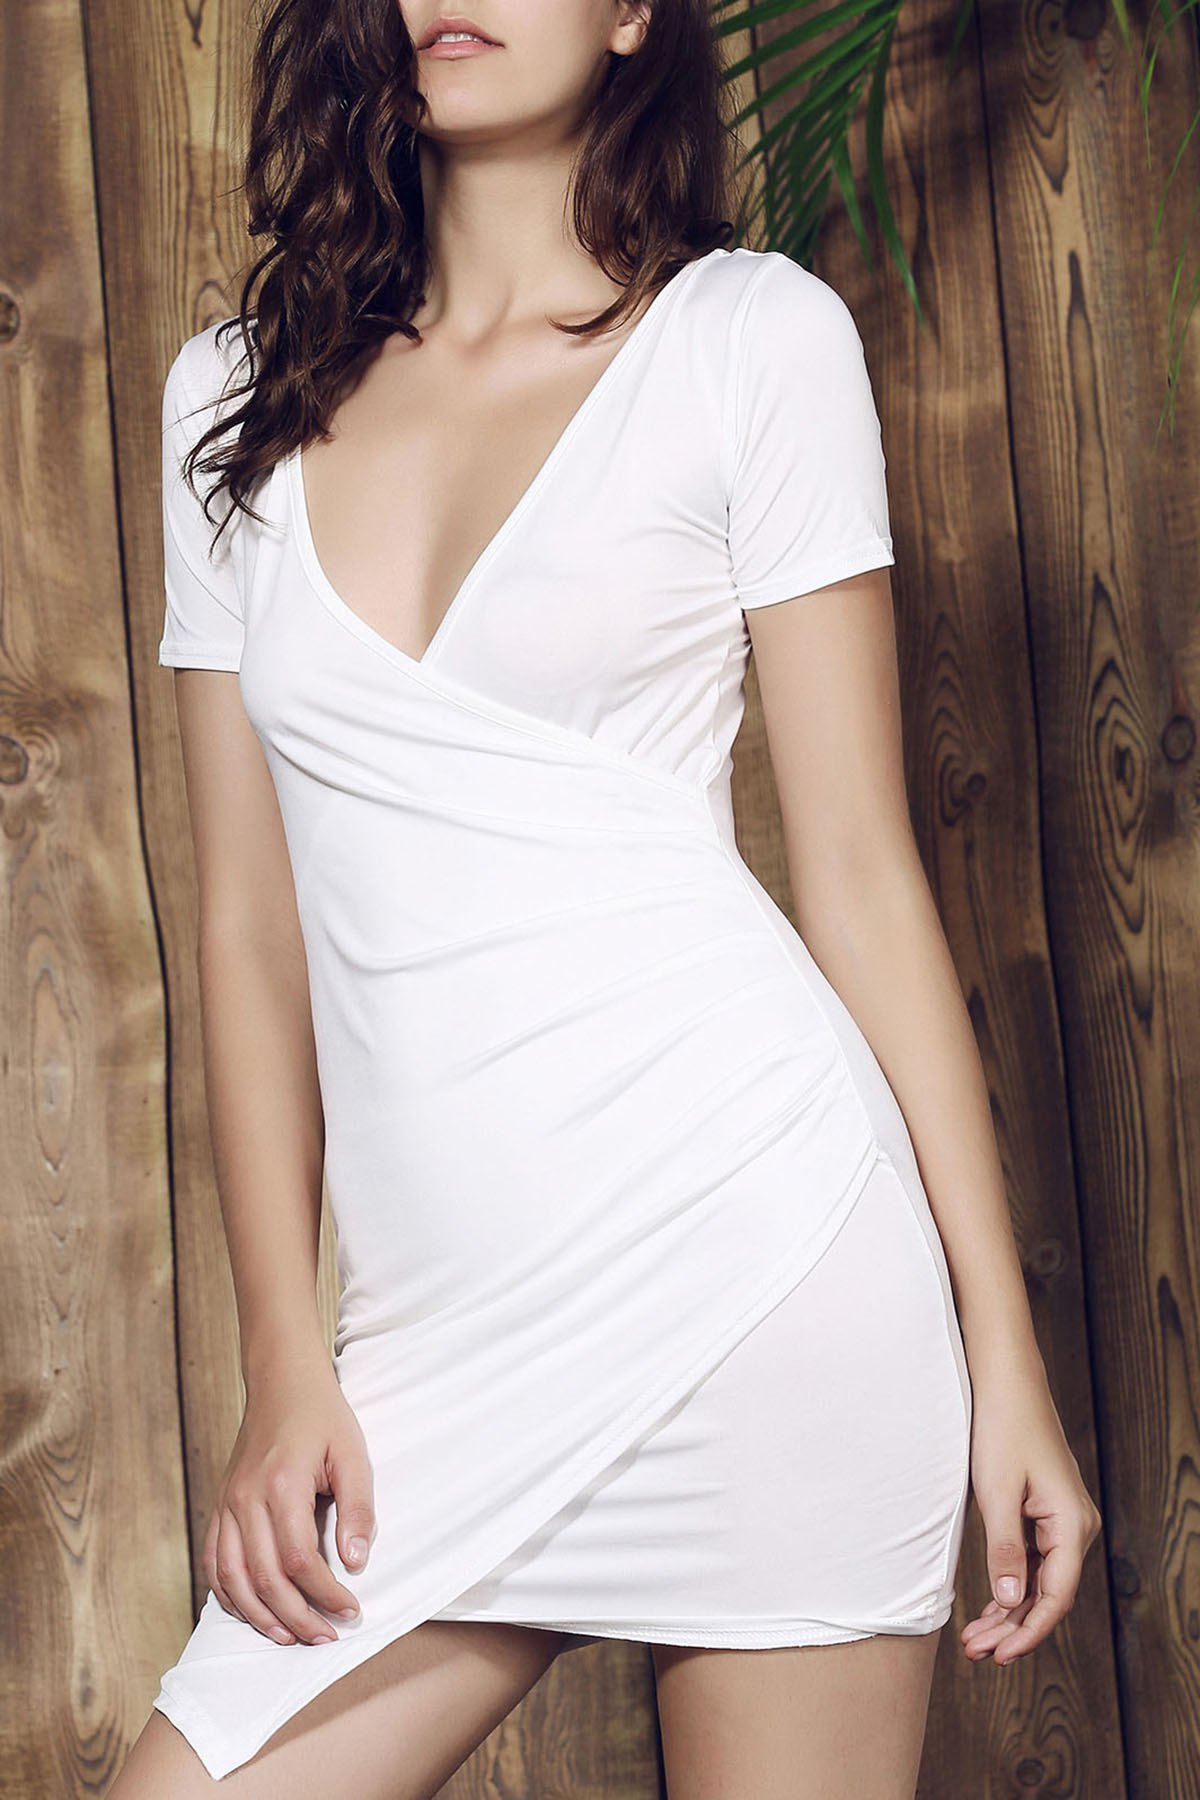 Plunging Collar Short Sleeve Solid Color Bodycon Dress - WHITE S